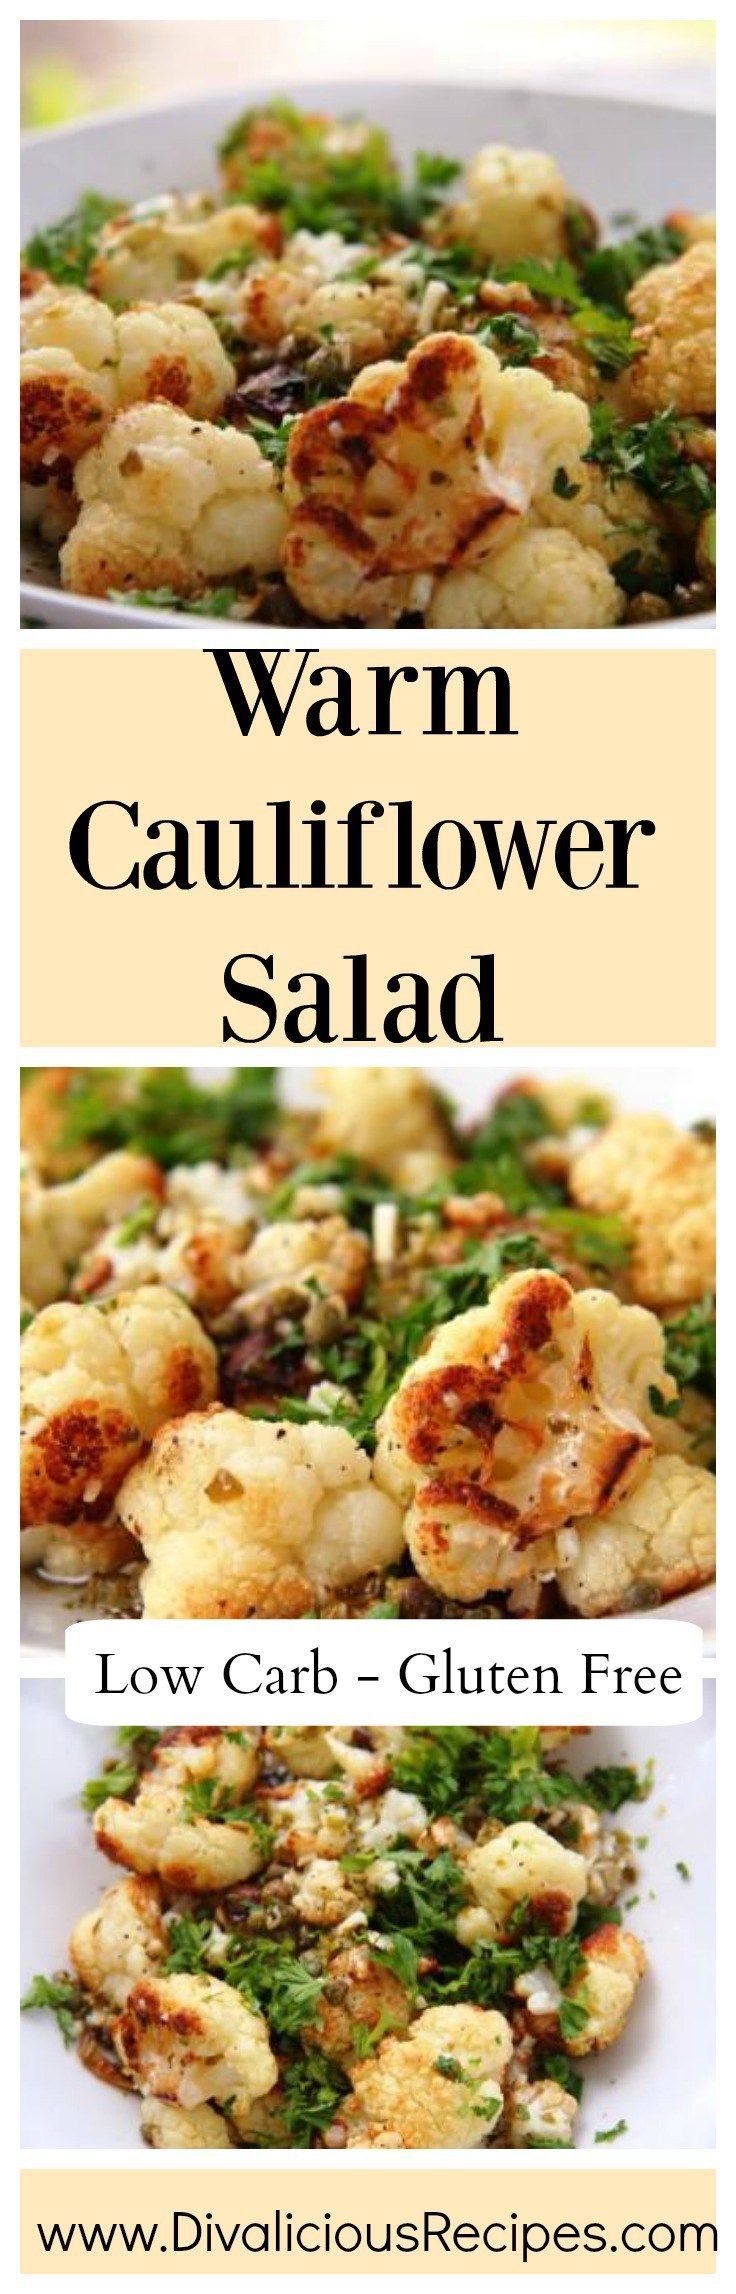 Warm Cauliflower Salad that is low carb & gluten free.  Recipe - http://divaliciousrecipes.com/2015/01/26/cauliflower-salad-warm/